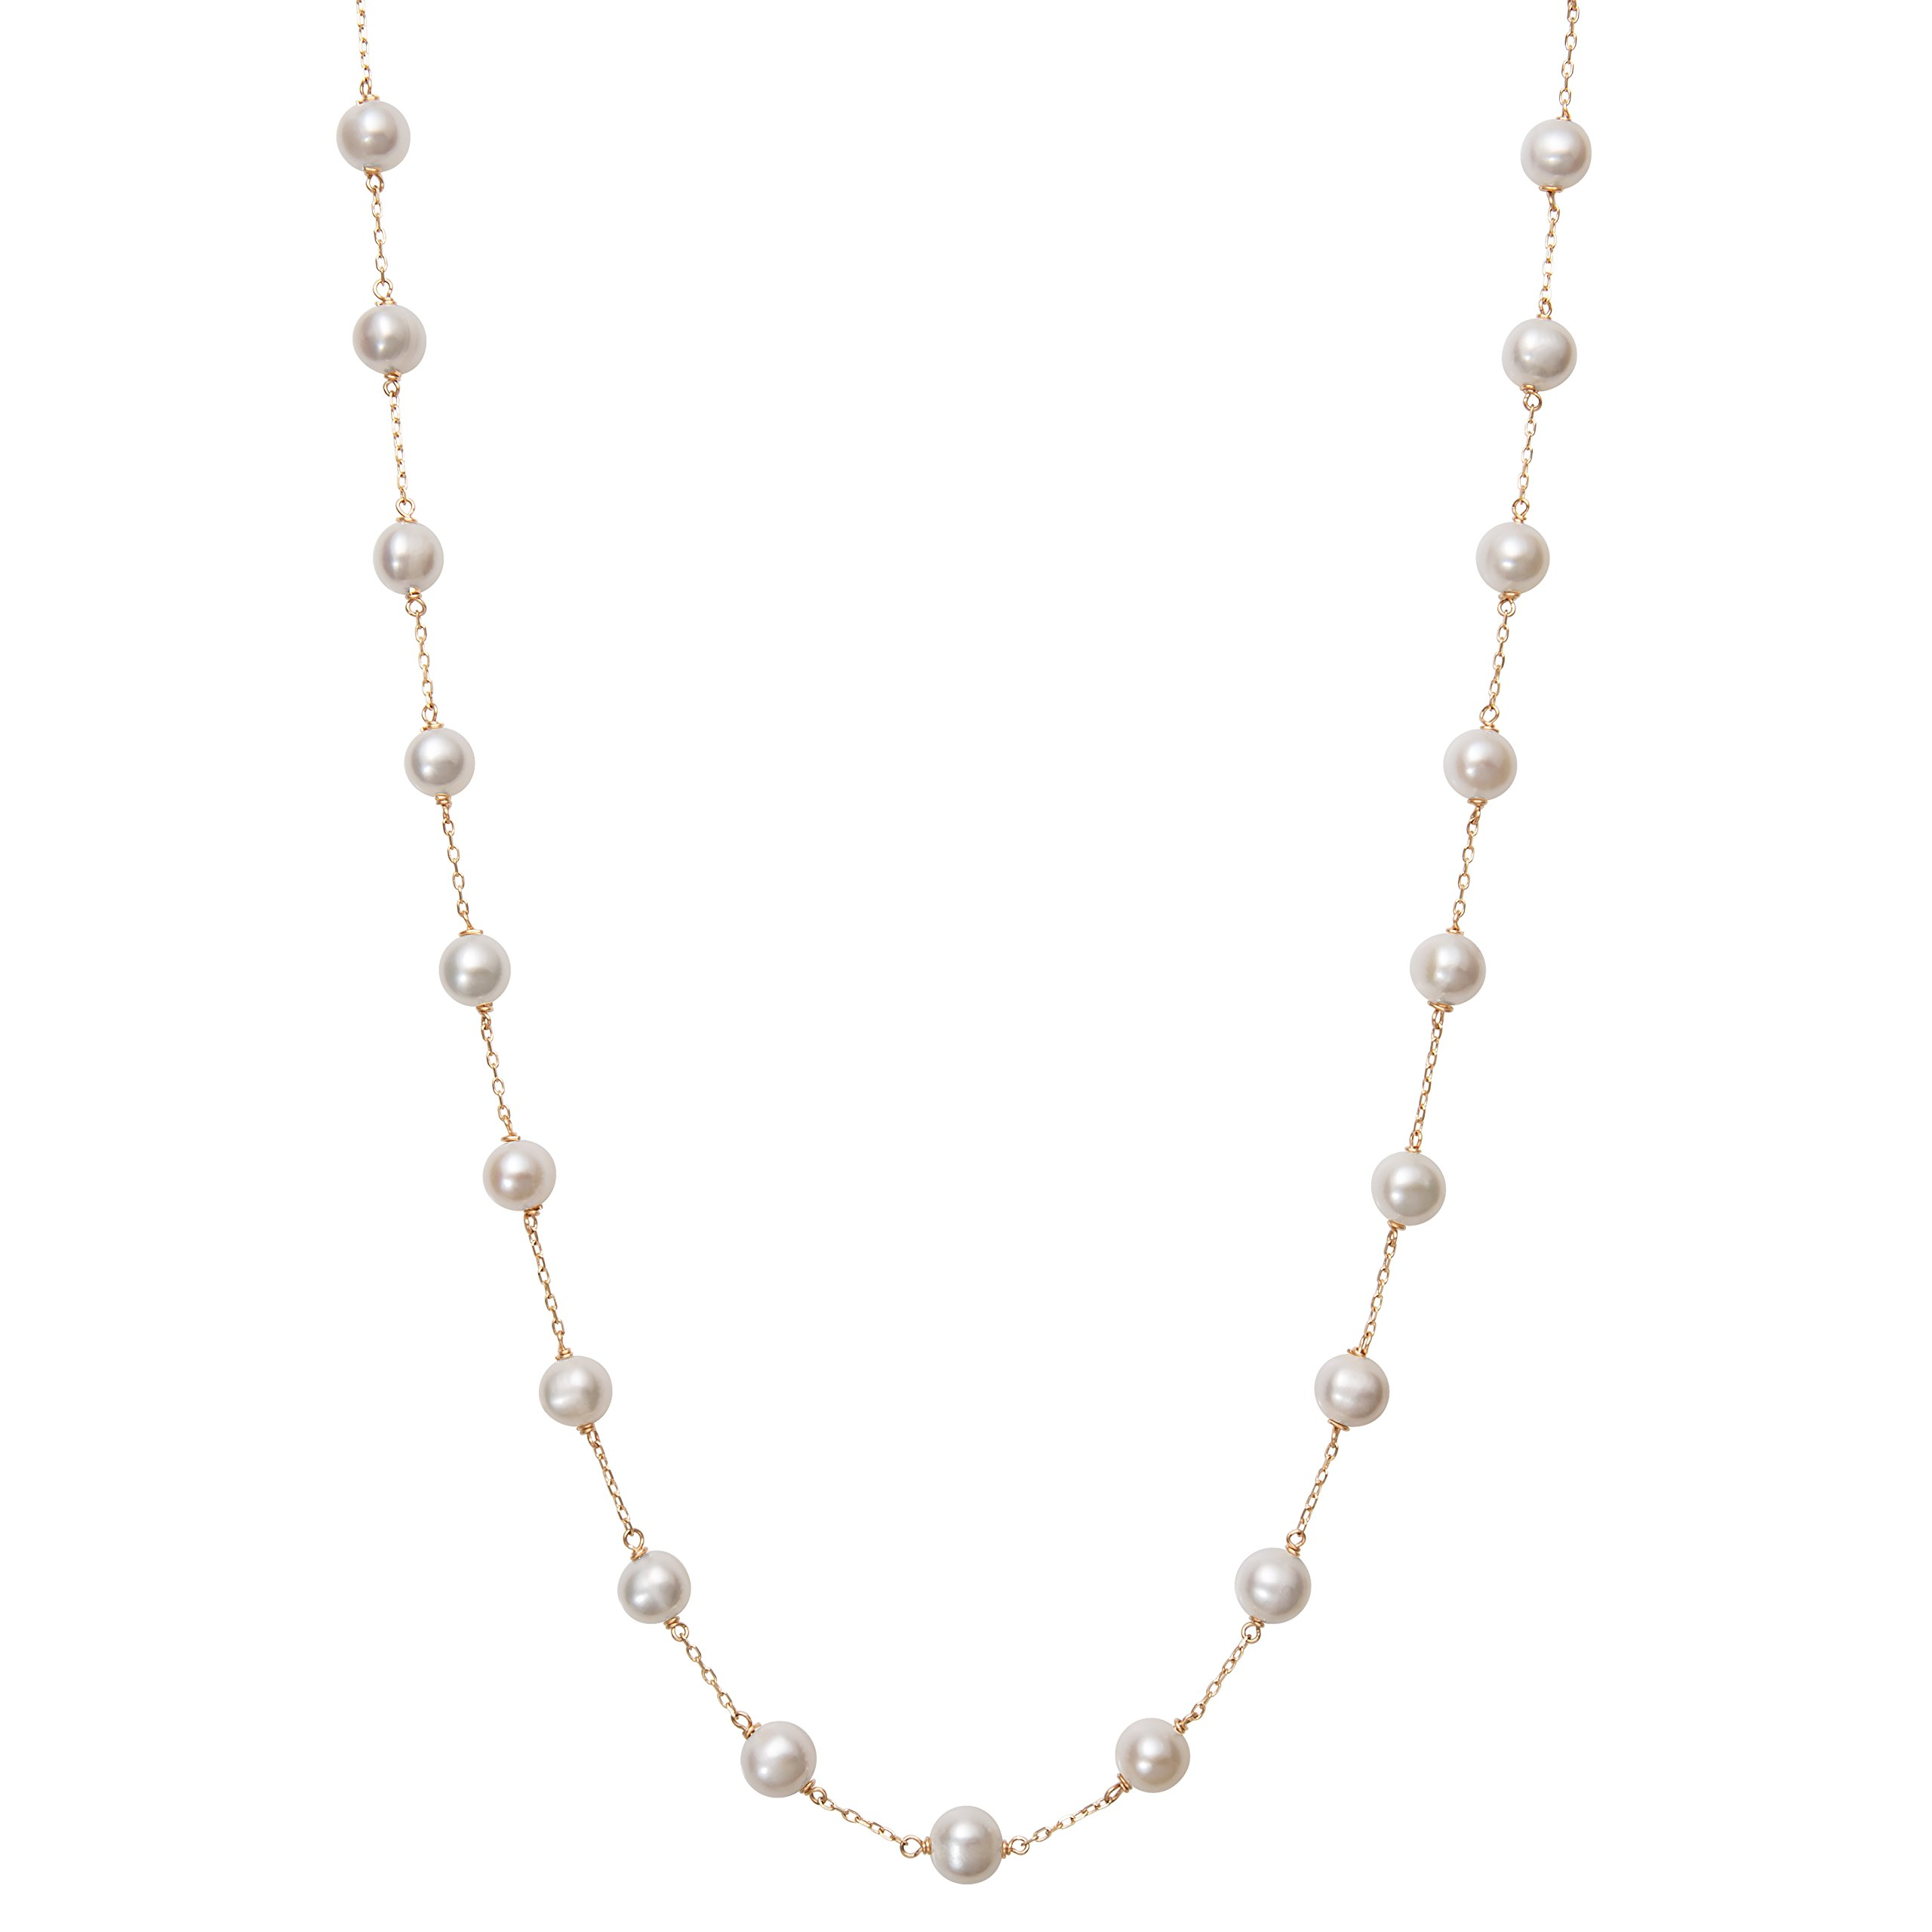 10K Yellow Gold Cultured Freshwater Pearl Layered Station Chain Necklace by Belacqua